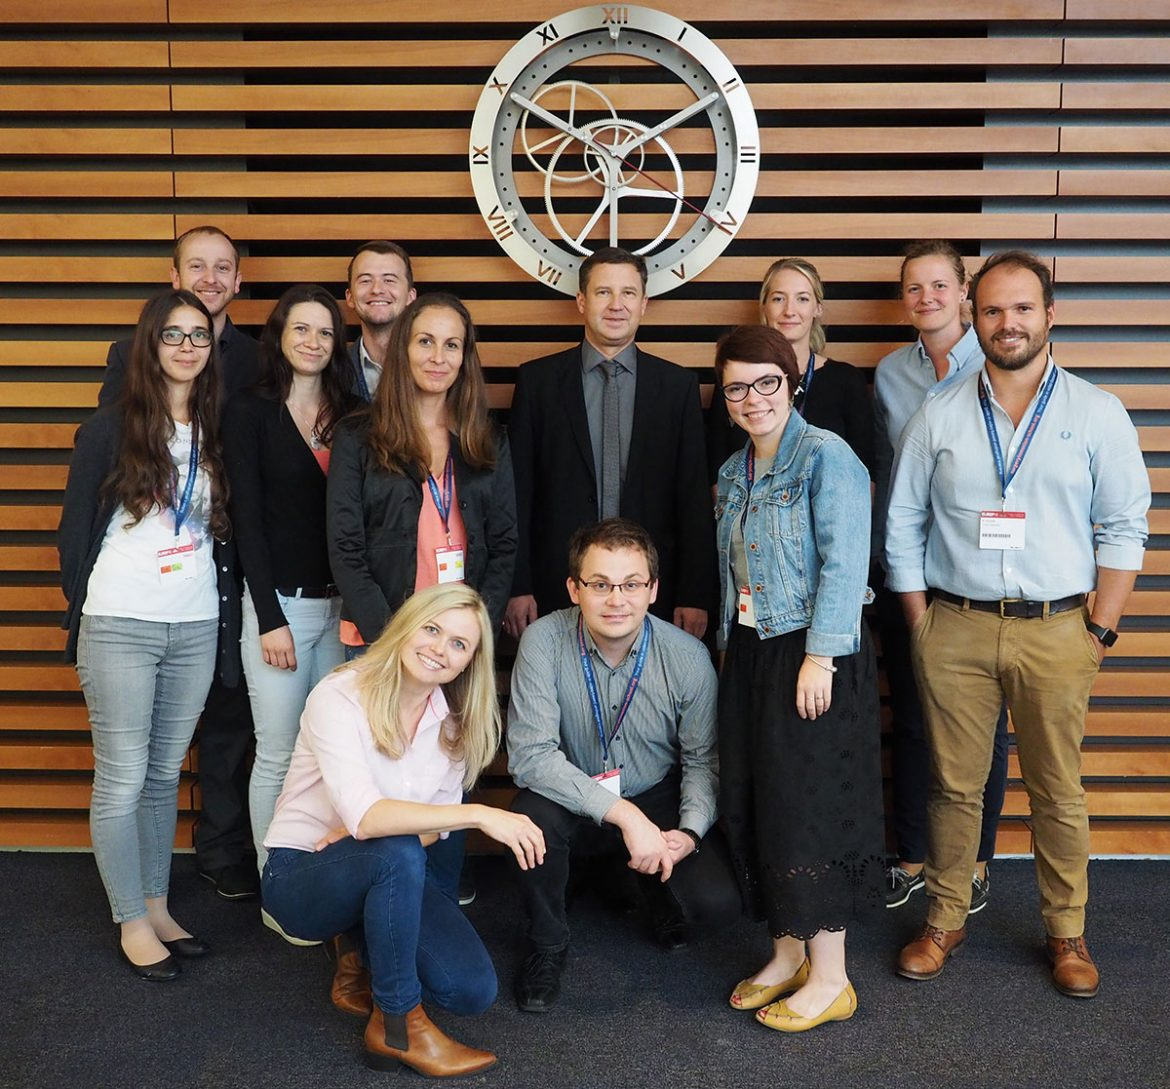 EUREP programme offers excellent learning opportunity for urology residents